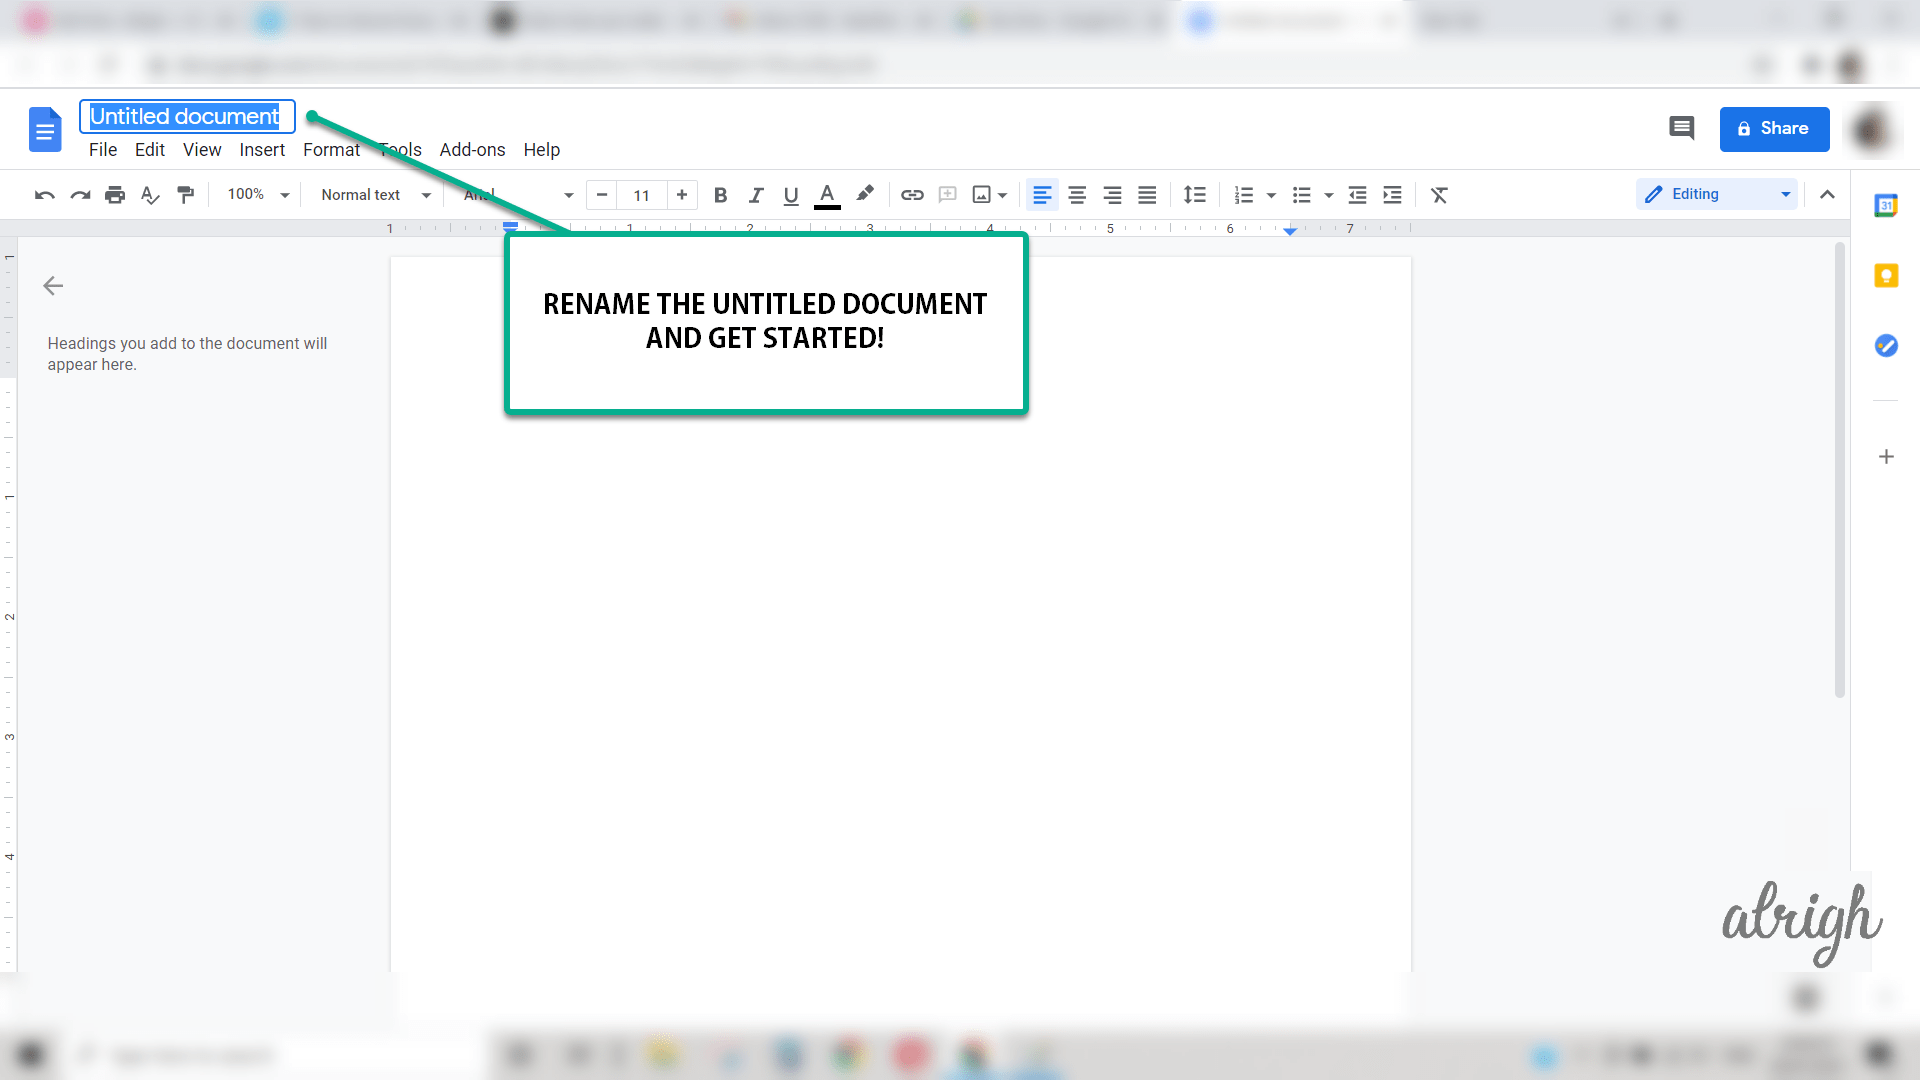 Changing name for yur newly created document